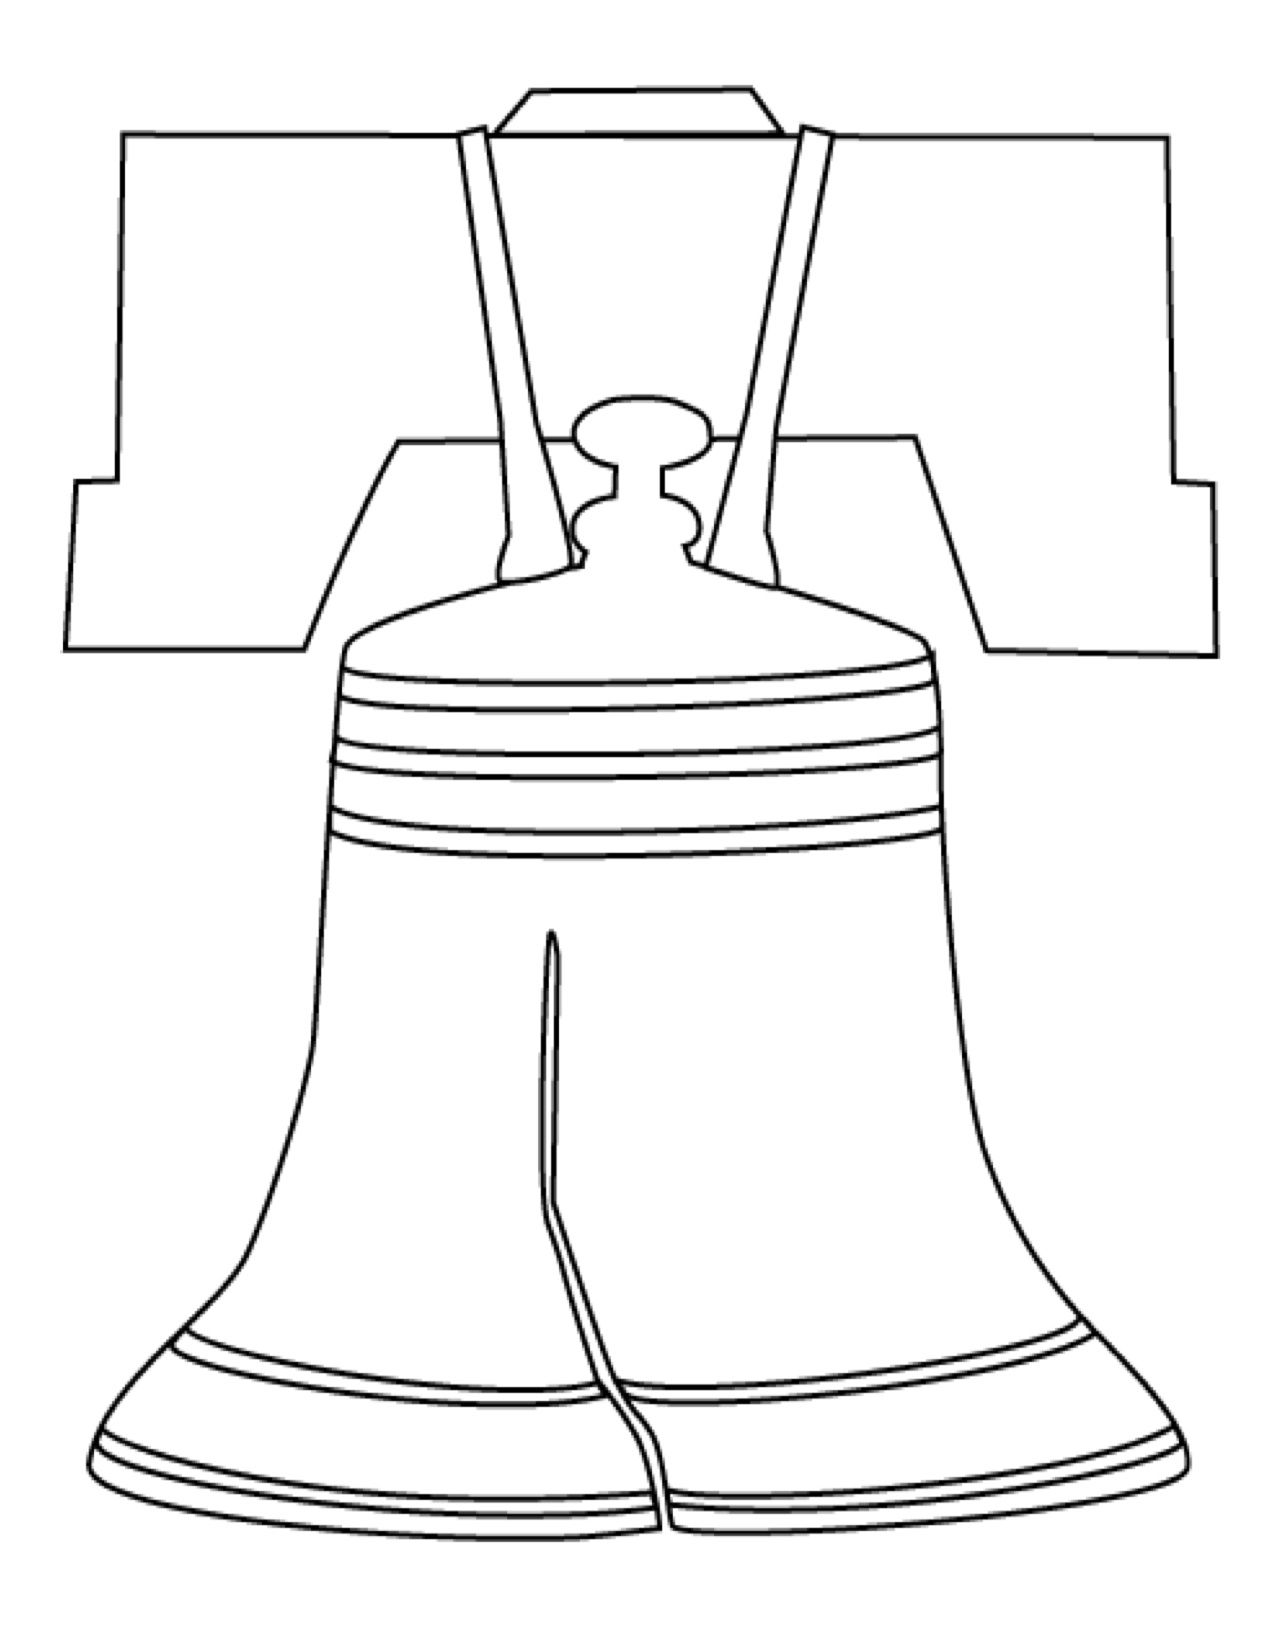 1275x1651 Fourth Of July Liberty Bell Craft Template For Kids Summer